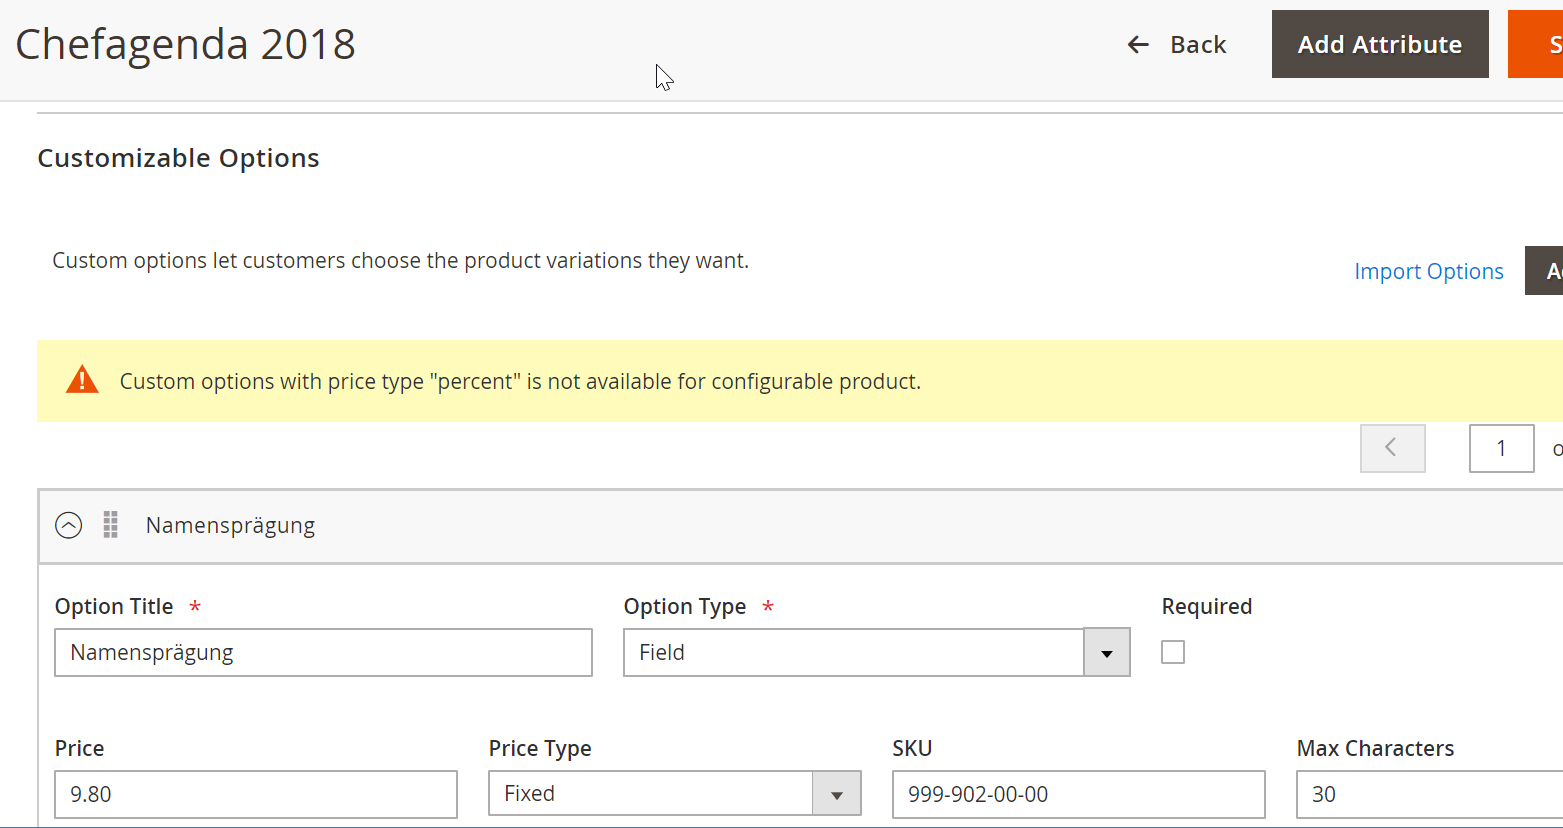 Configurable product - can not use custom options · Issue #2739